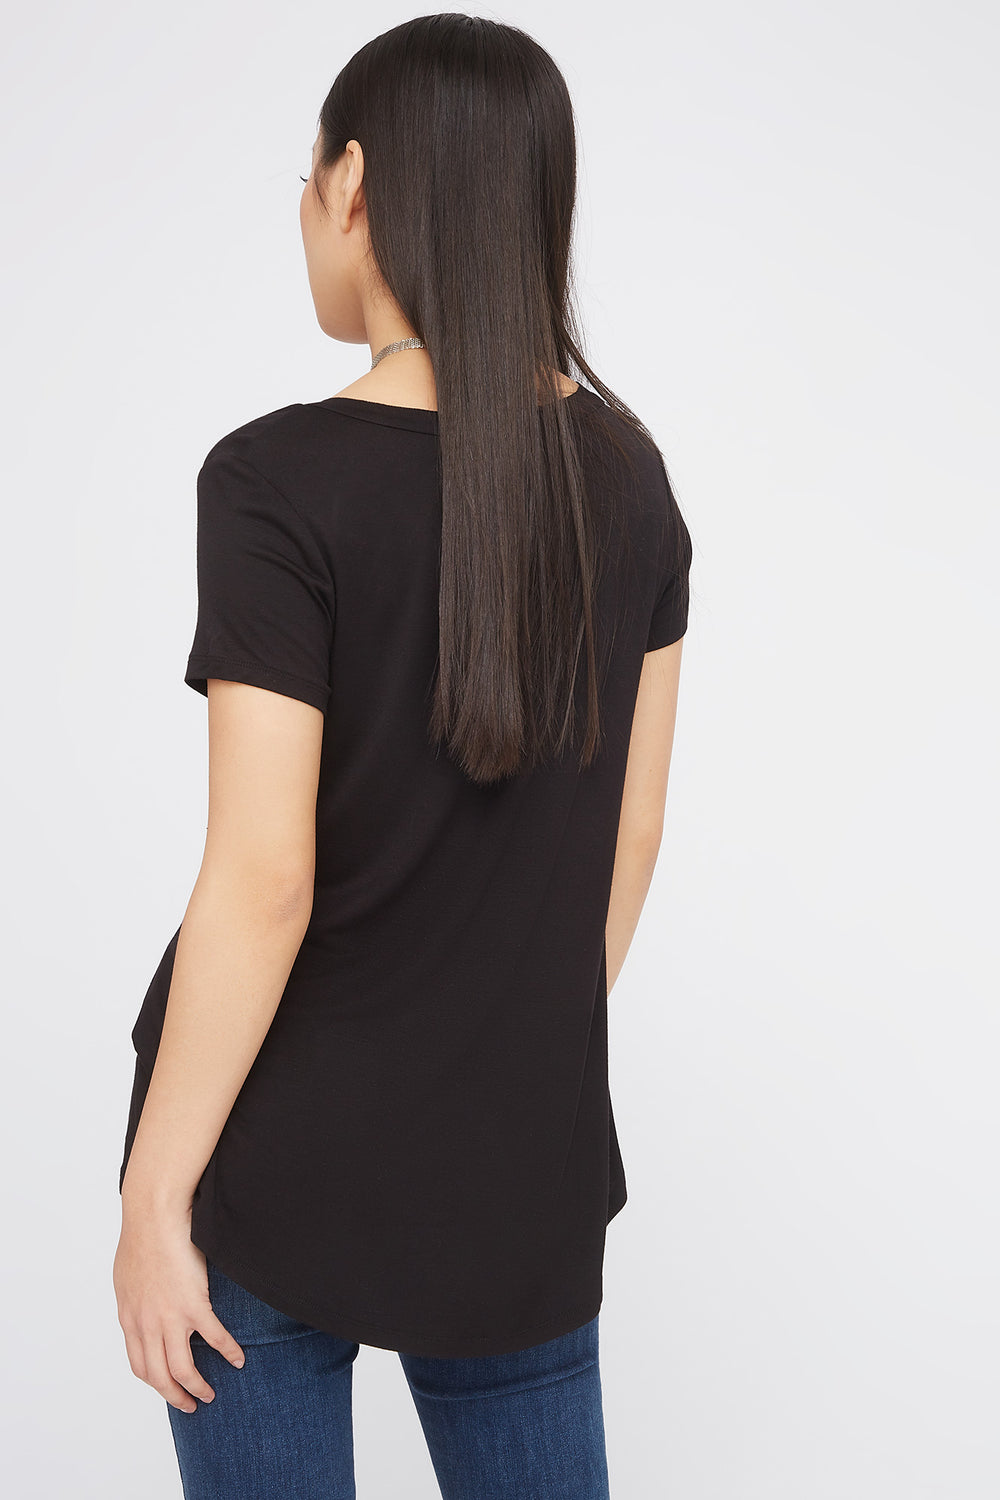 Relaxed V-Neck Pocket T-Shirt Black